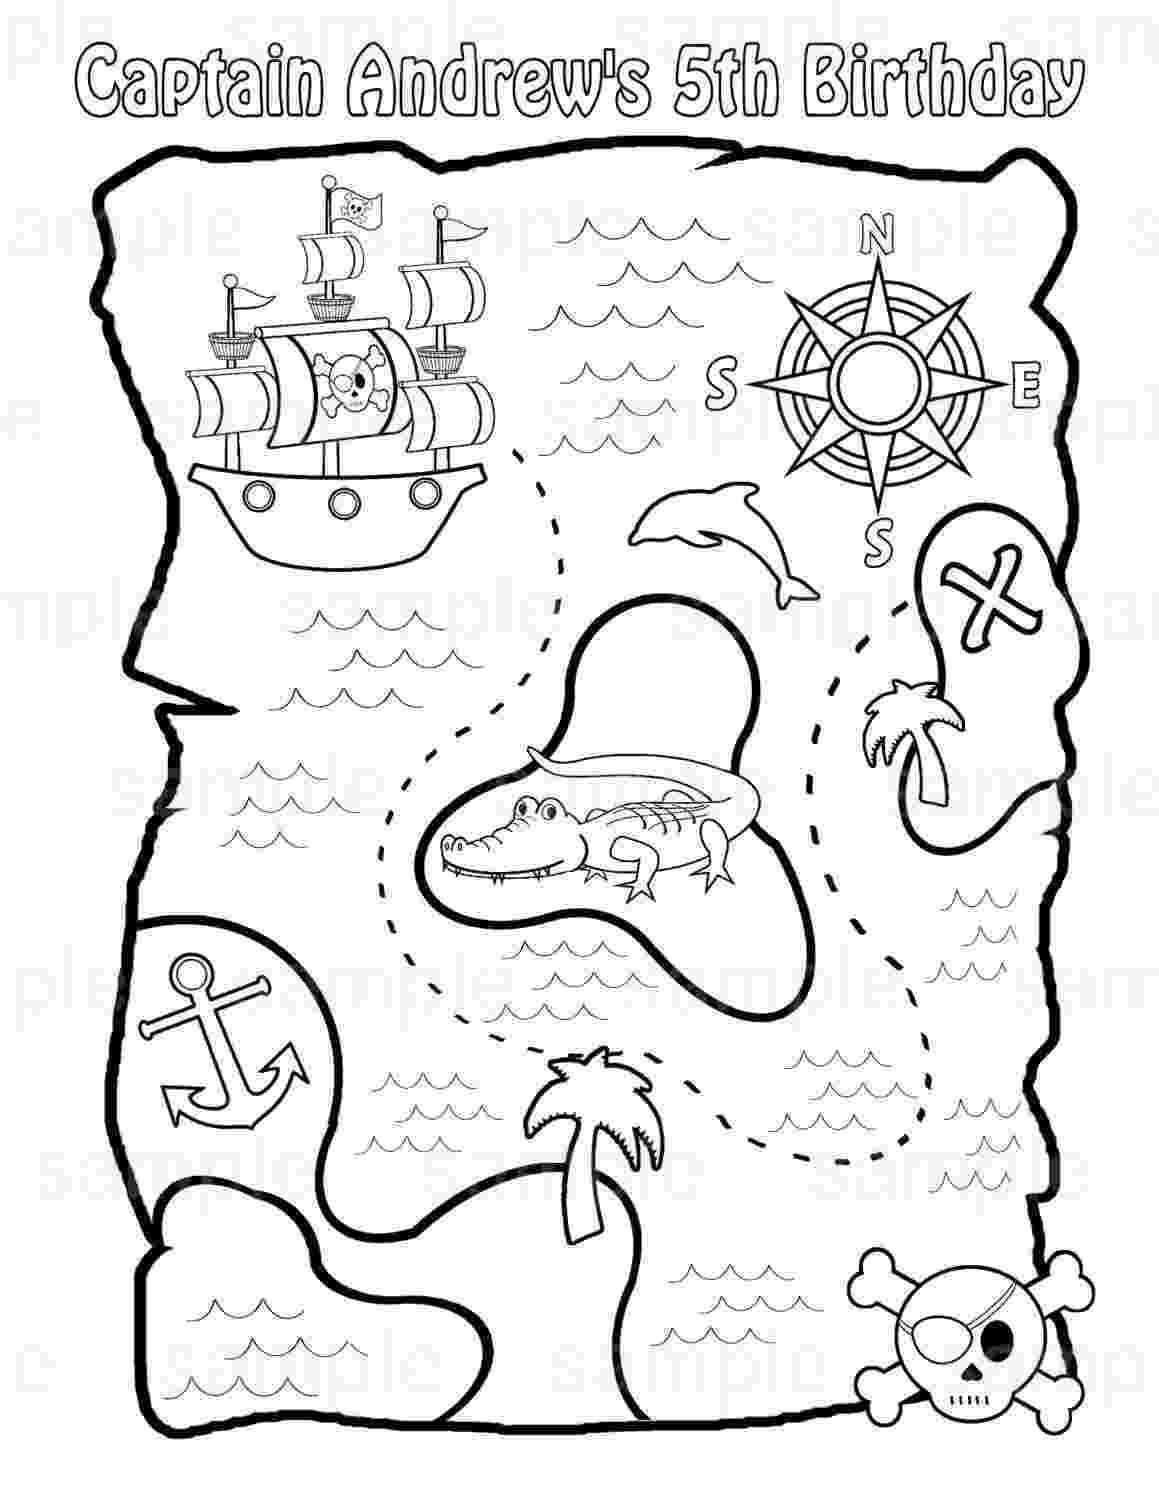 printable treasure map coloring page printable treasure map kids activity page map printable treasure coloring